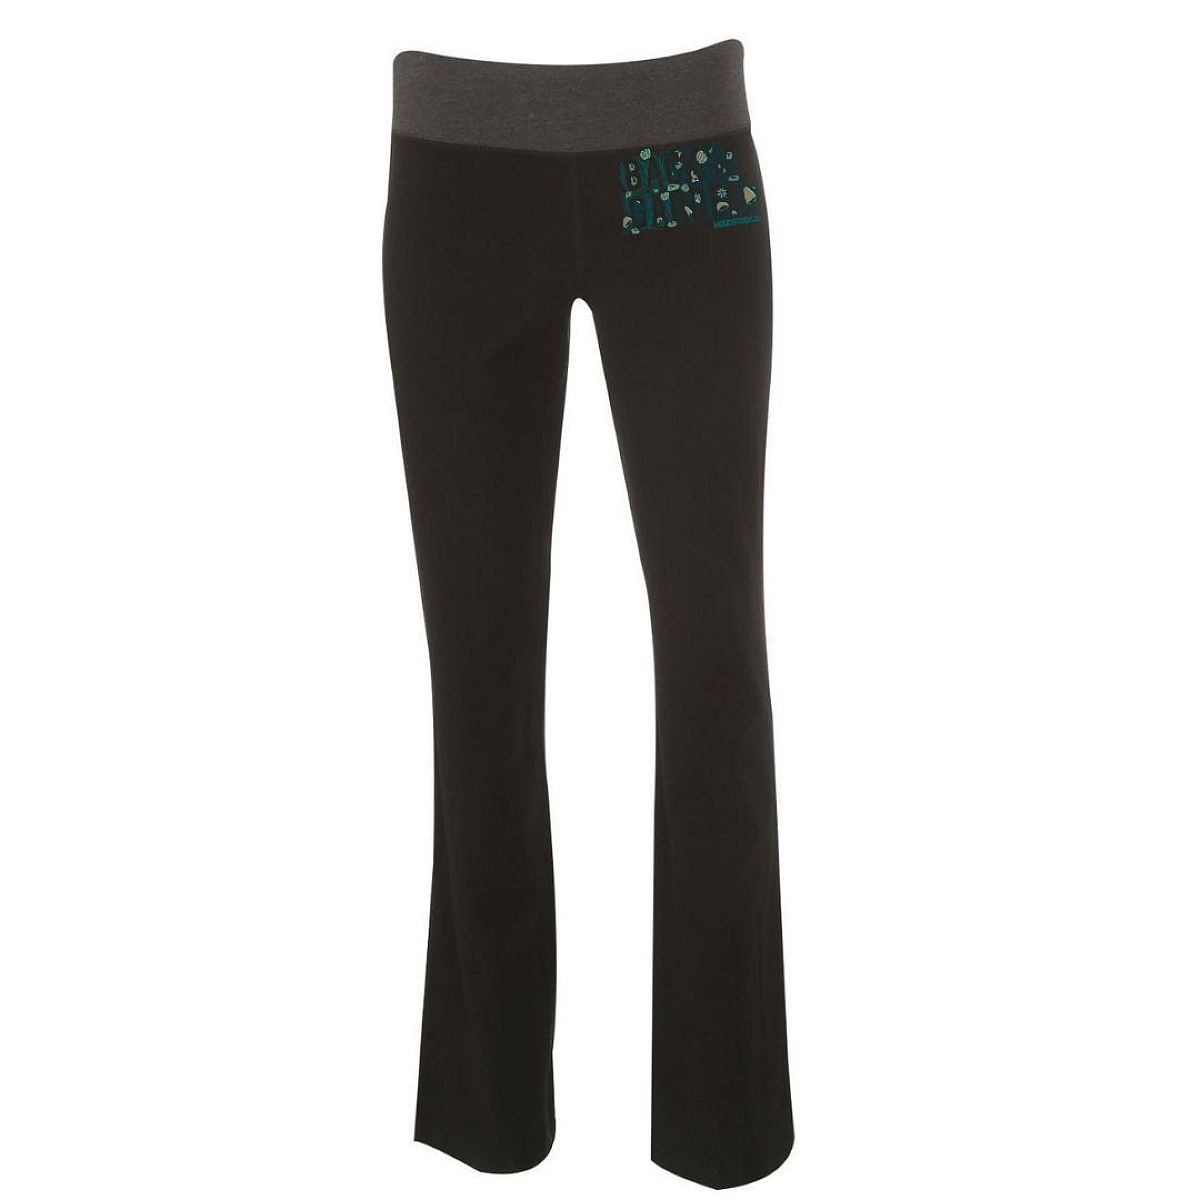 Green Logo Back To The Garden Yoga Pants